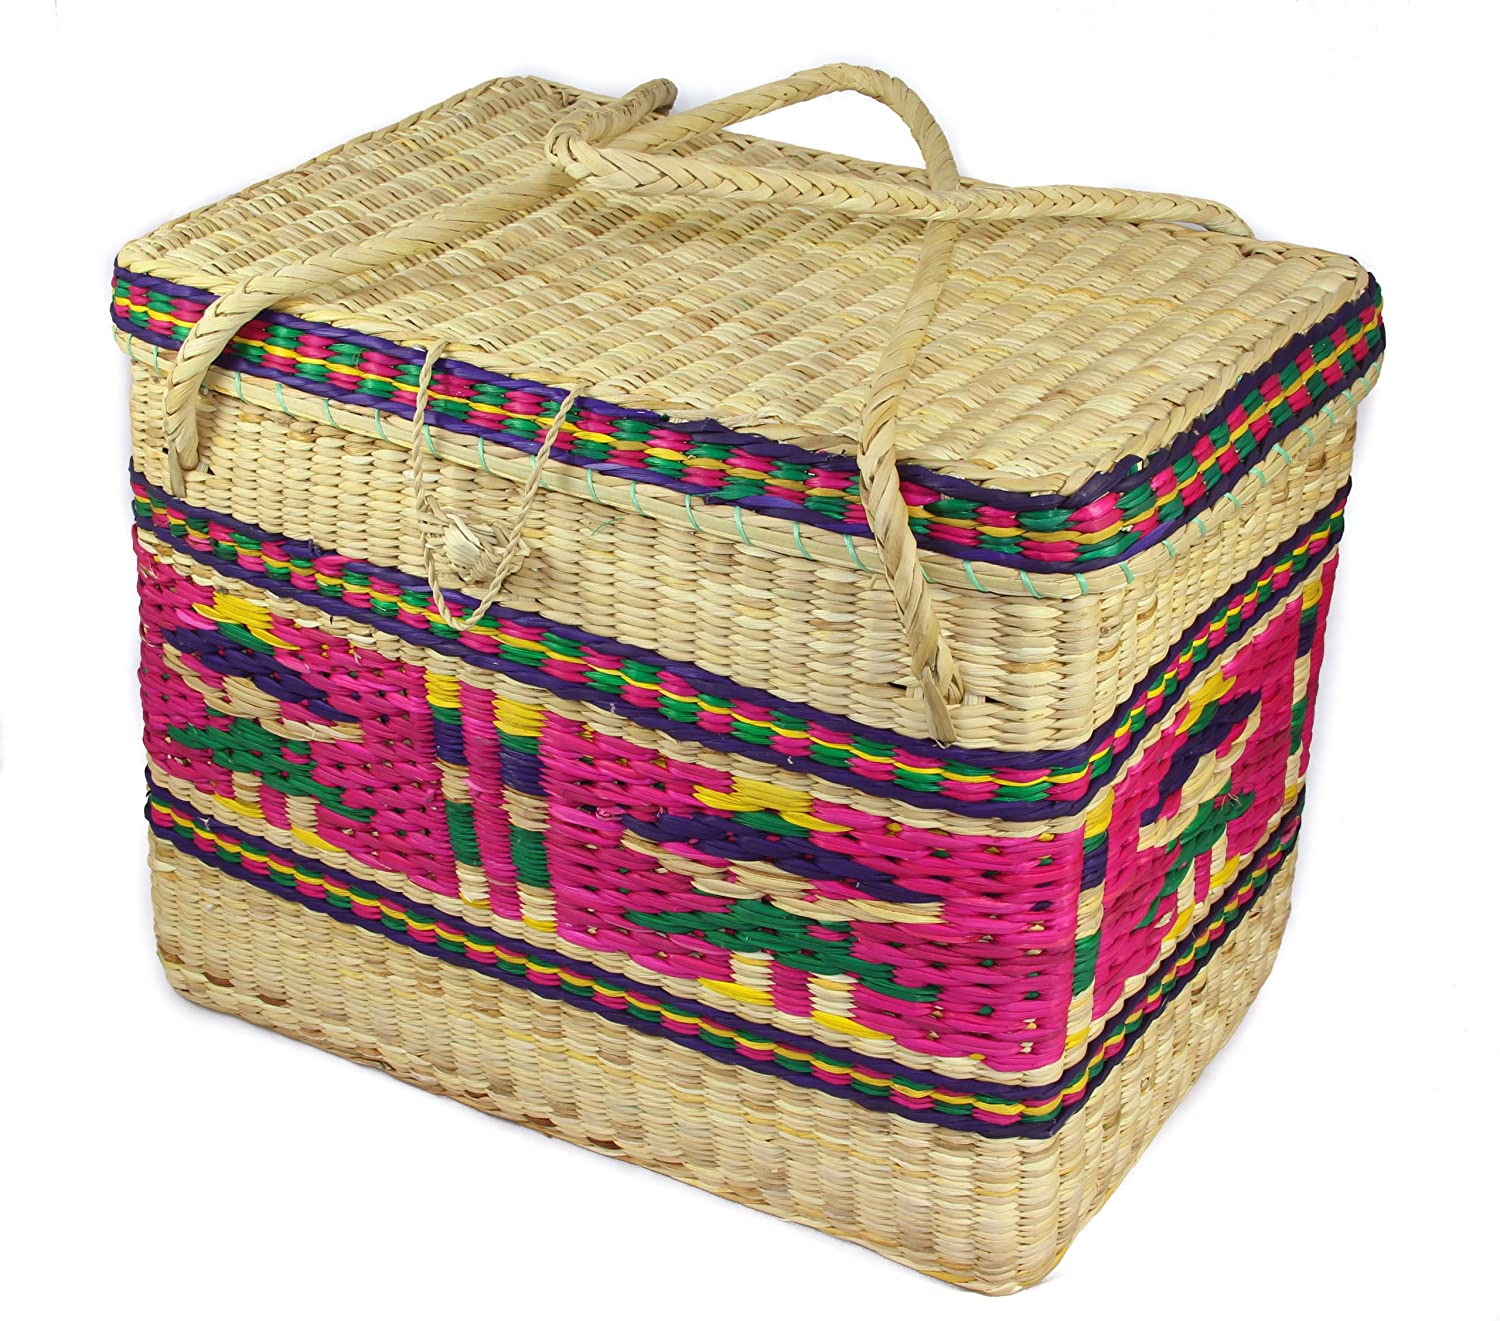 woven basket with lid. Colourful Soft Woven Wicker Basket With Lid, Pink Small 20H X 16W 25L (cm) - Fair Trade And Handmade In Ecuador Perfect For Laundry, Picnics Storage. Lid